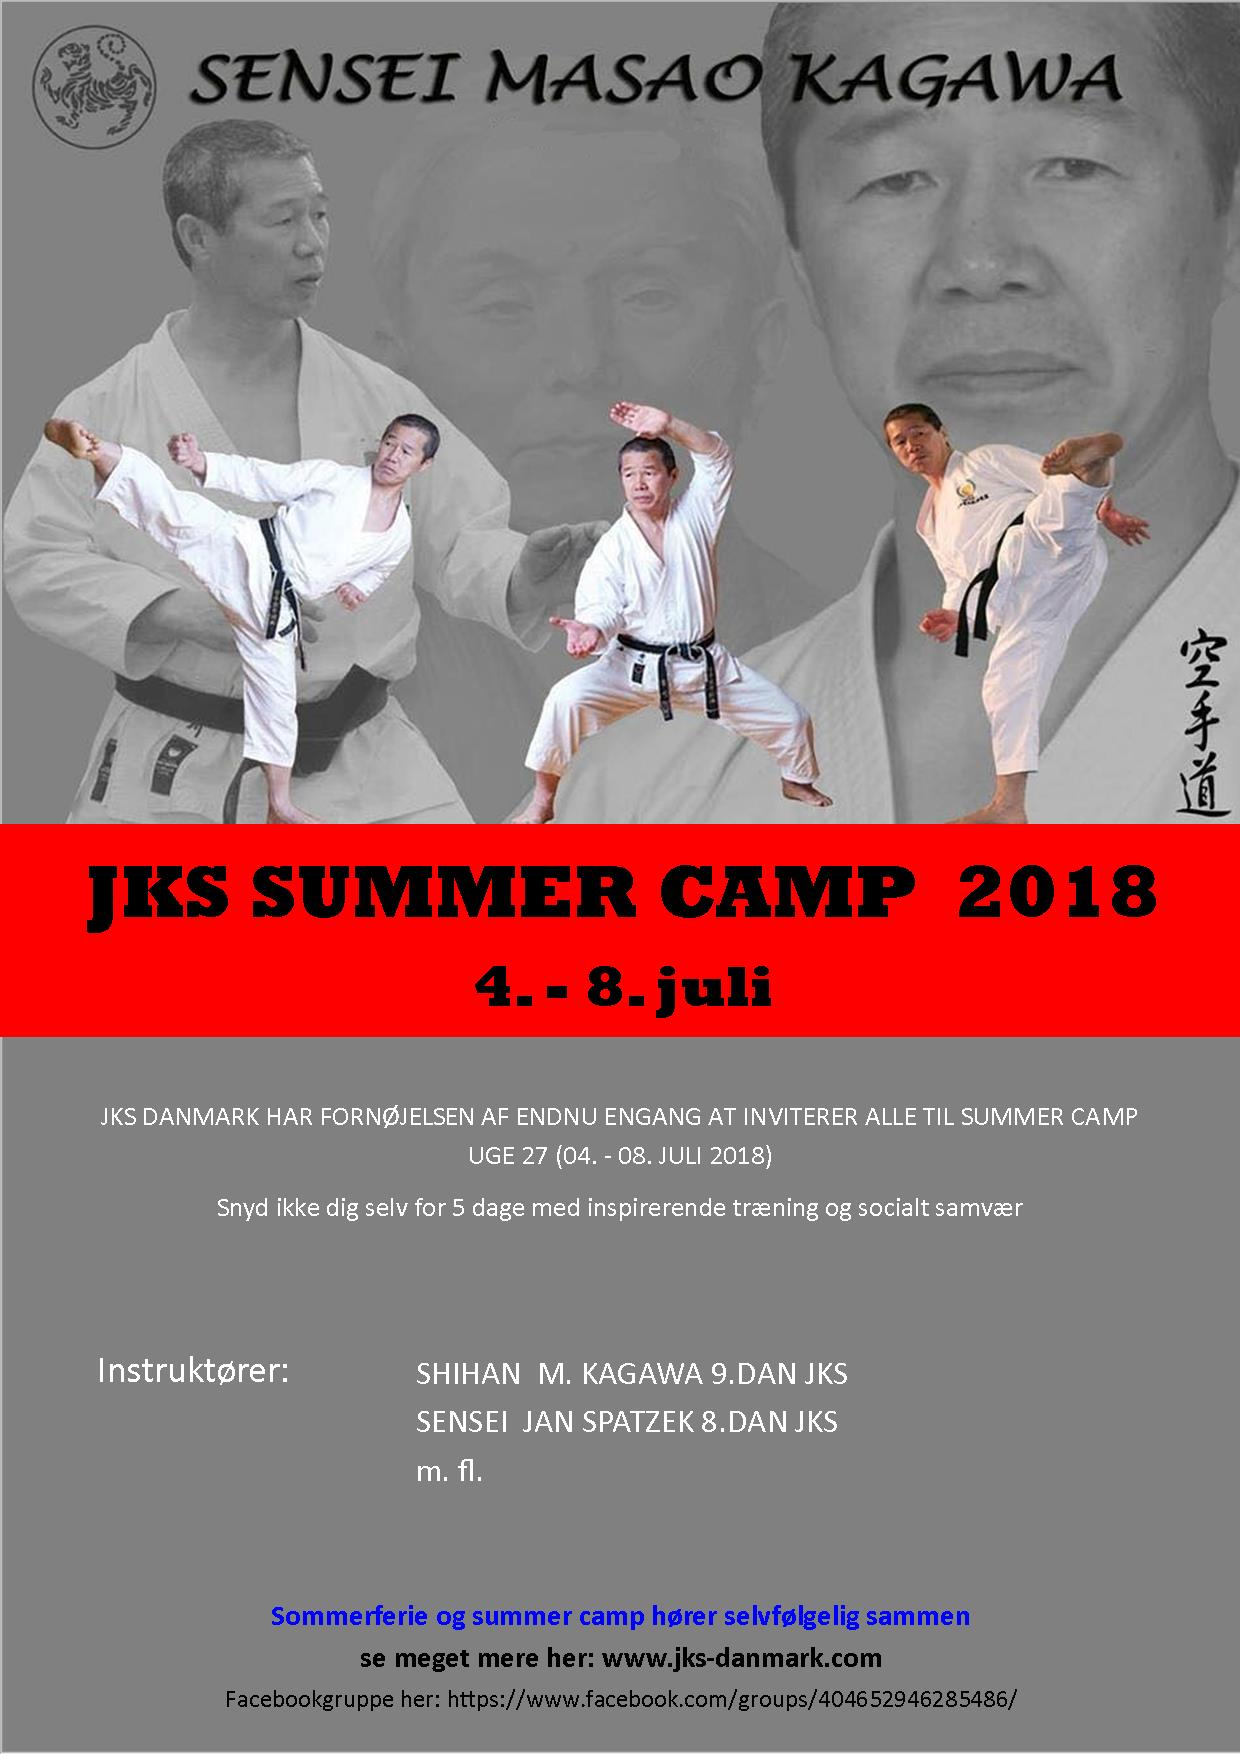 Publikation1 summercamp2018 1